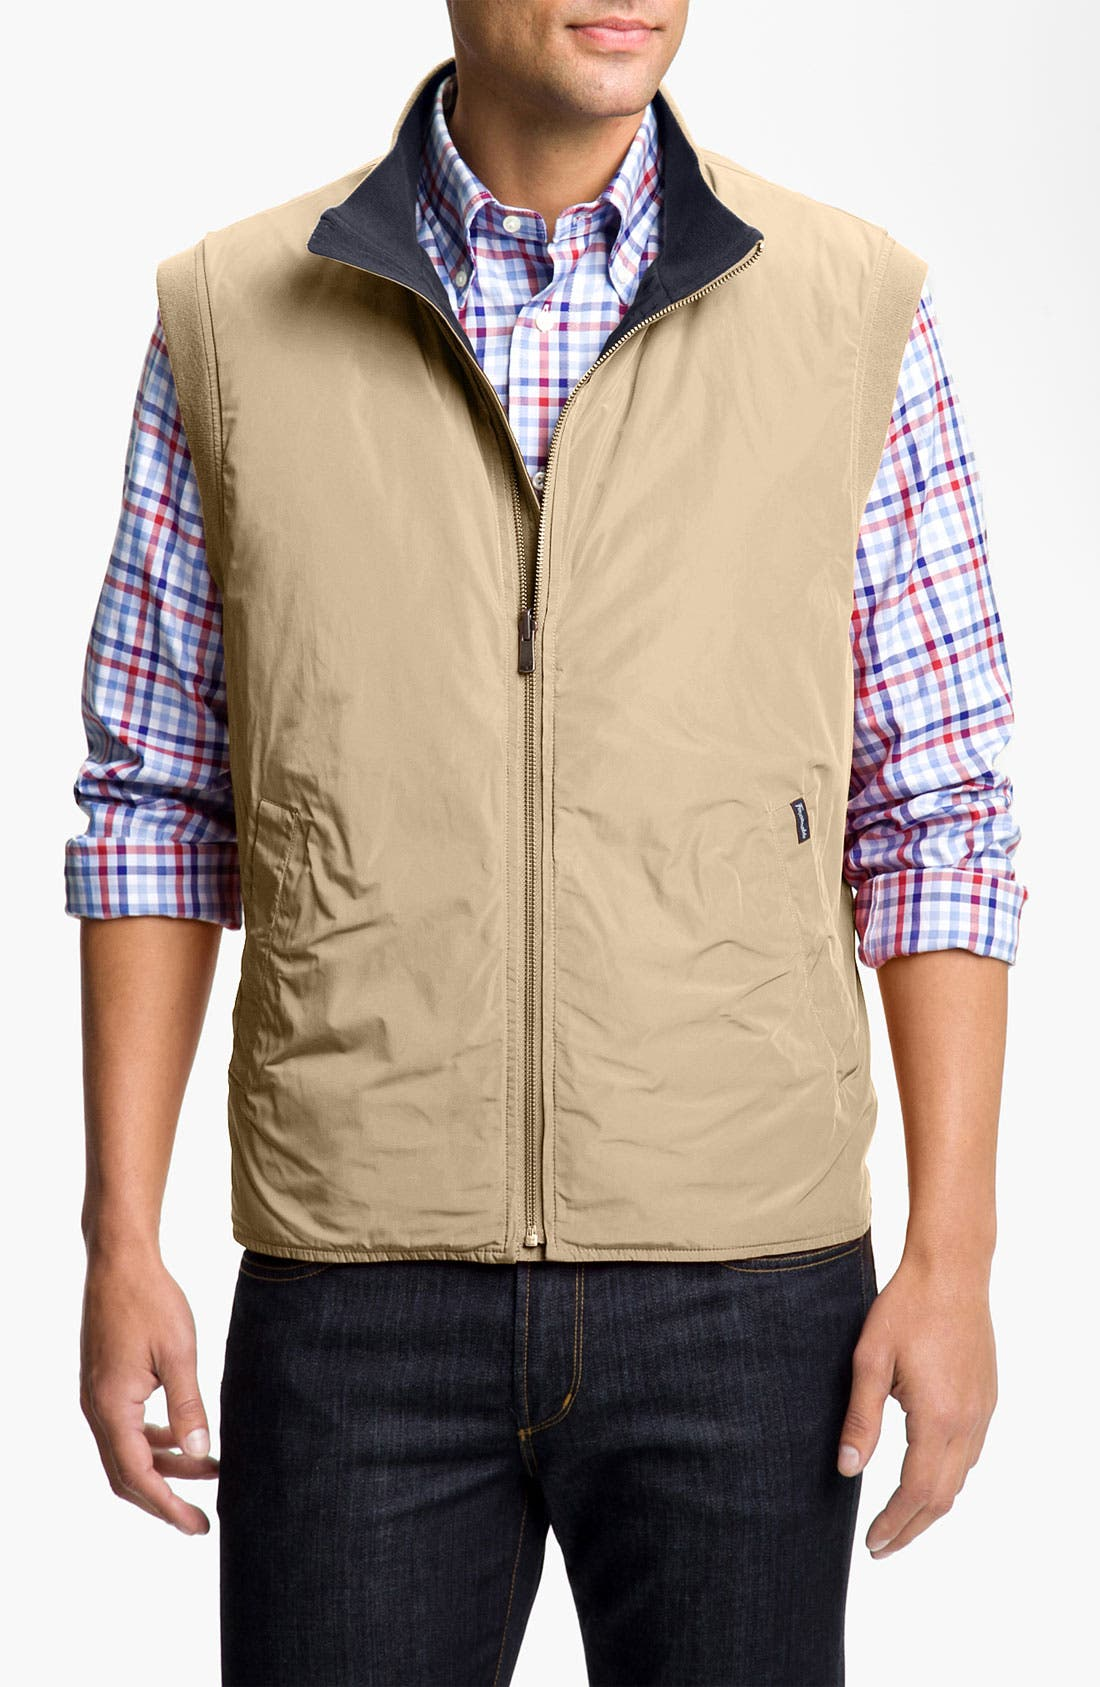 Alternate Image 1 Selected - Façonnable Classique Fit Reversible Zip Vest